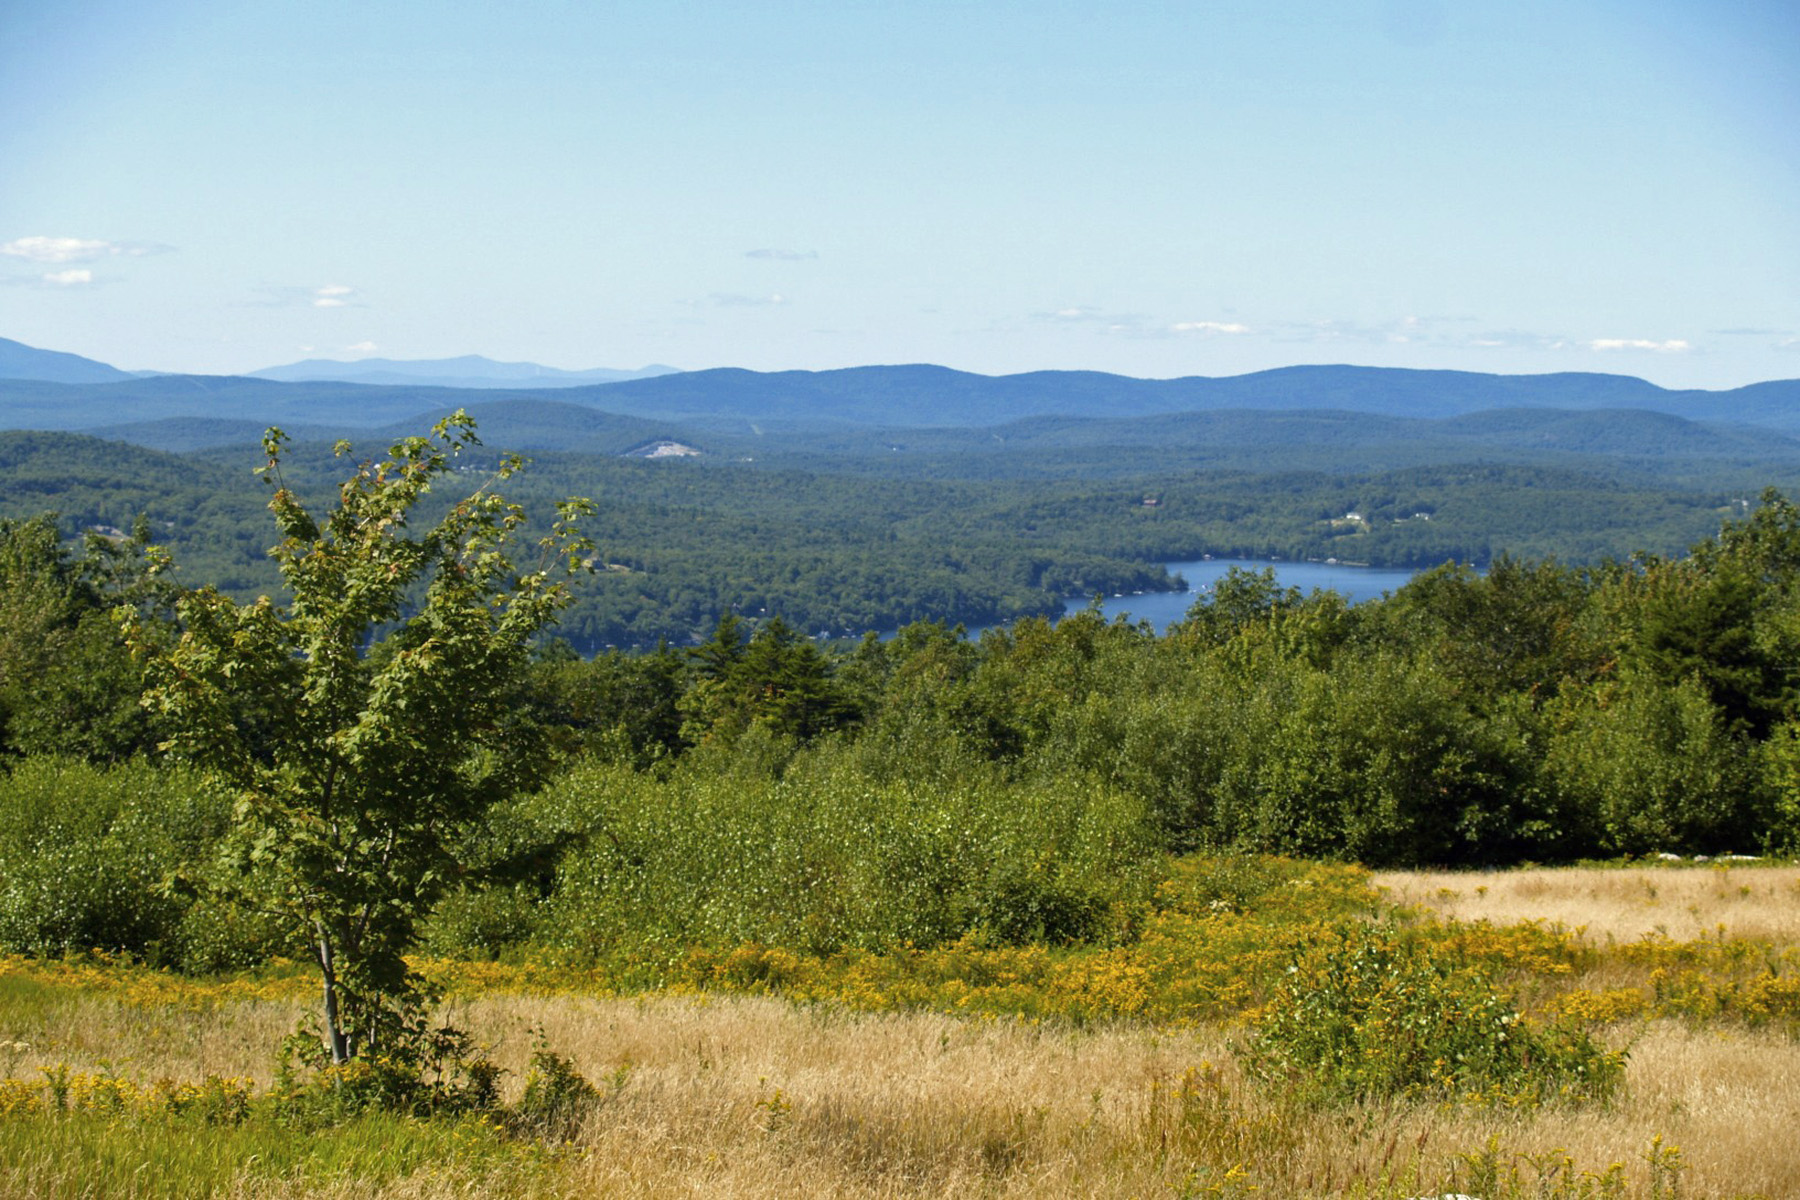 Land for Sale at High Meadow Road, Newbury High Meadow Rd Newbury, New Hampshire, 03255 United States